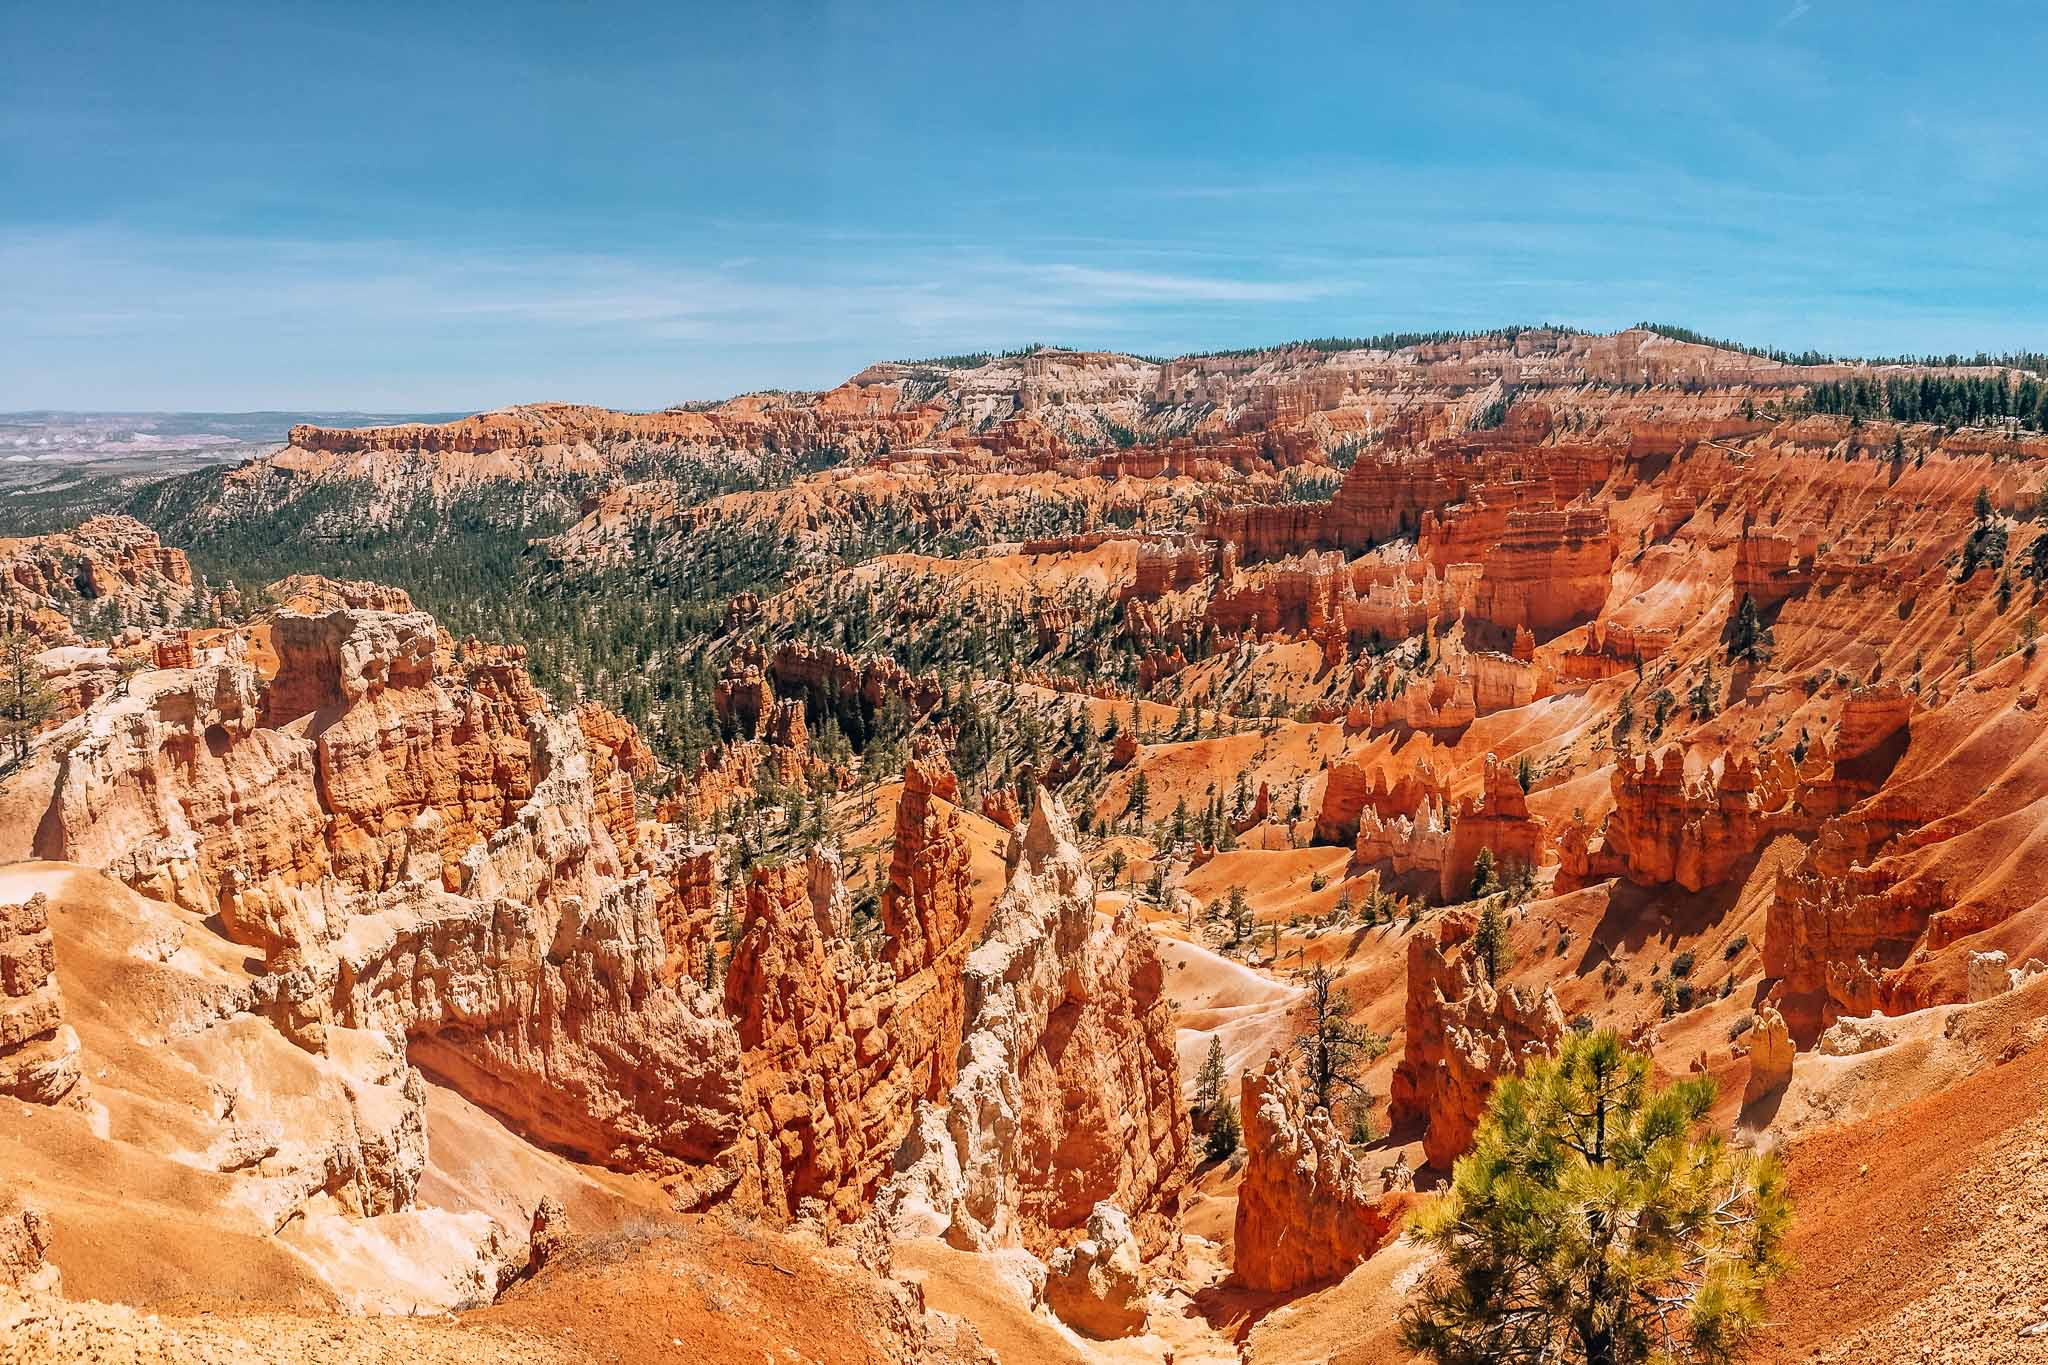 Landscape photograph of Bryce Canyon National Park in Utah. There are  lots of various rock formations and a scarcity of trees.